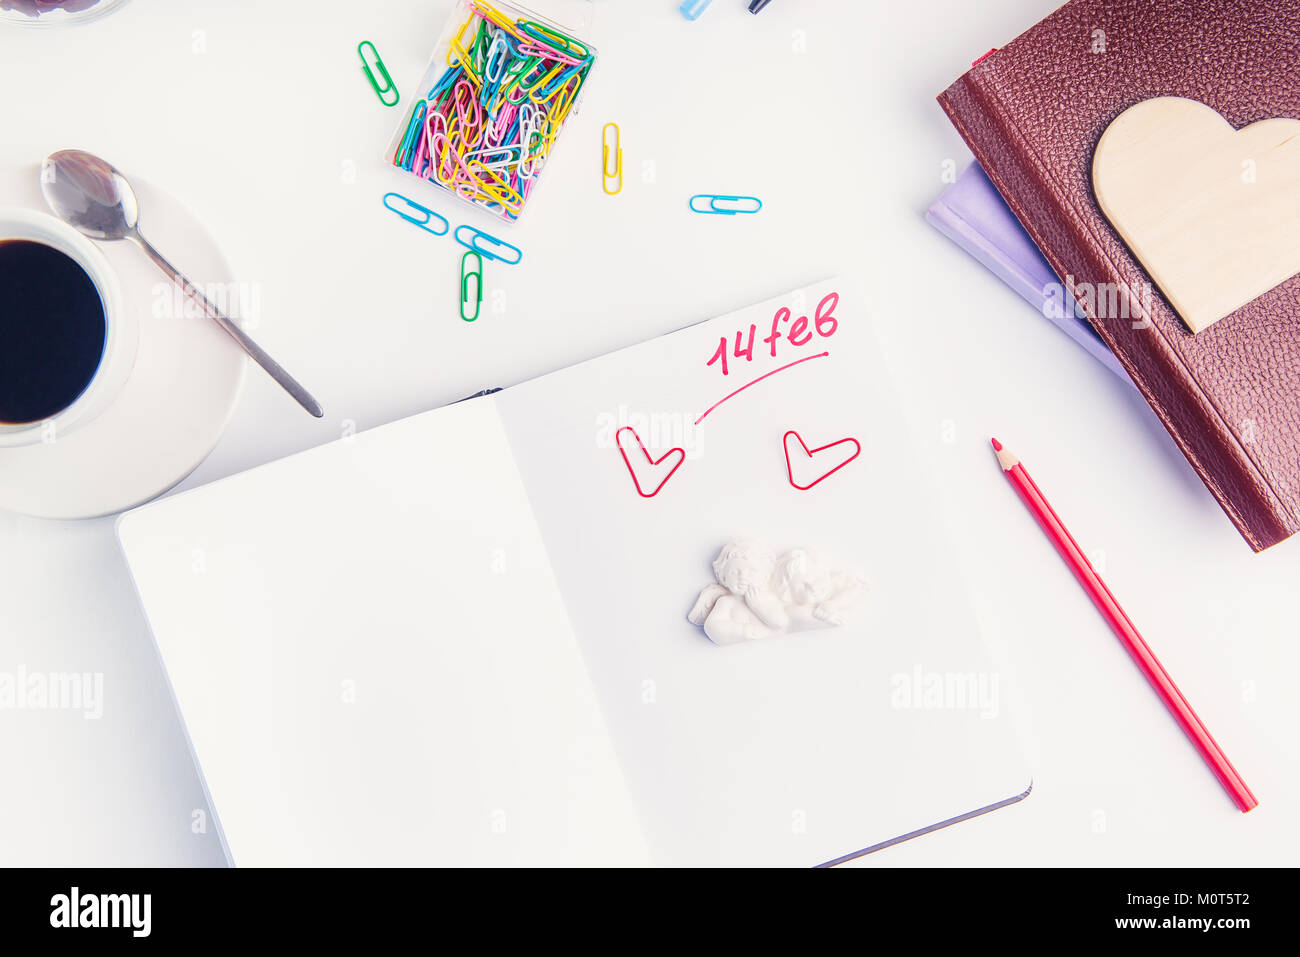 Red handwriting number fourteen febuary, Valentine's day text and angels stauette on personal organizer on the working place. Valentine's Day planning concept. Selective focus. Stock Photo